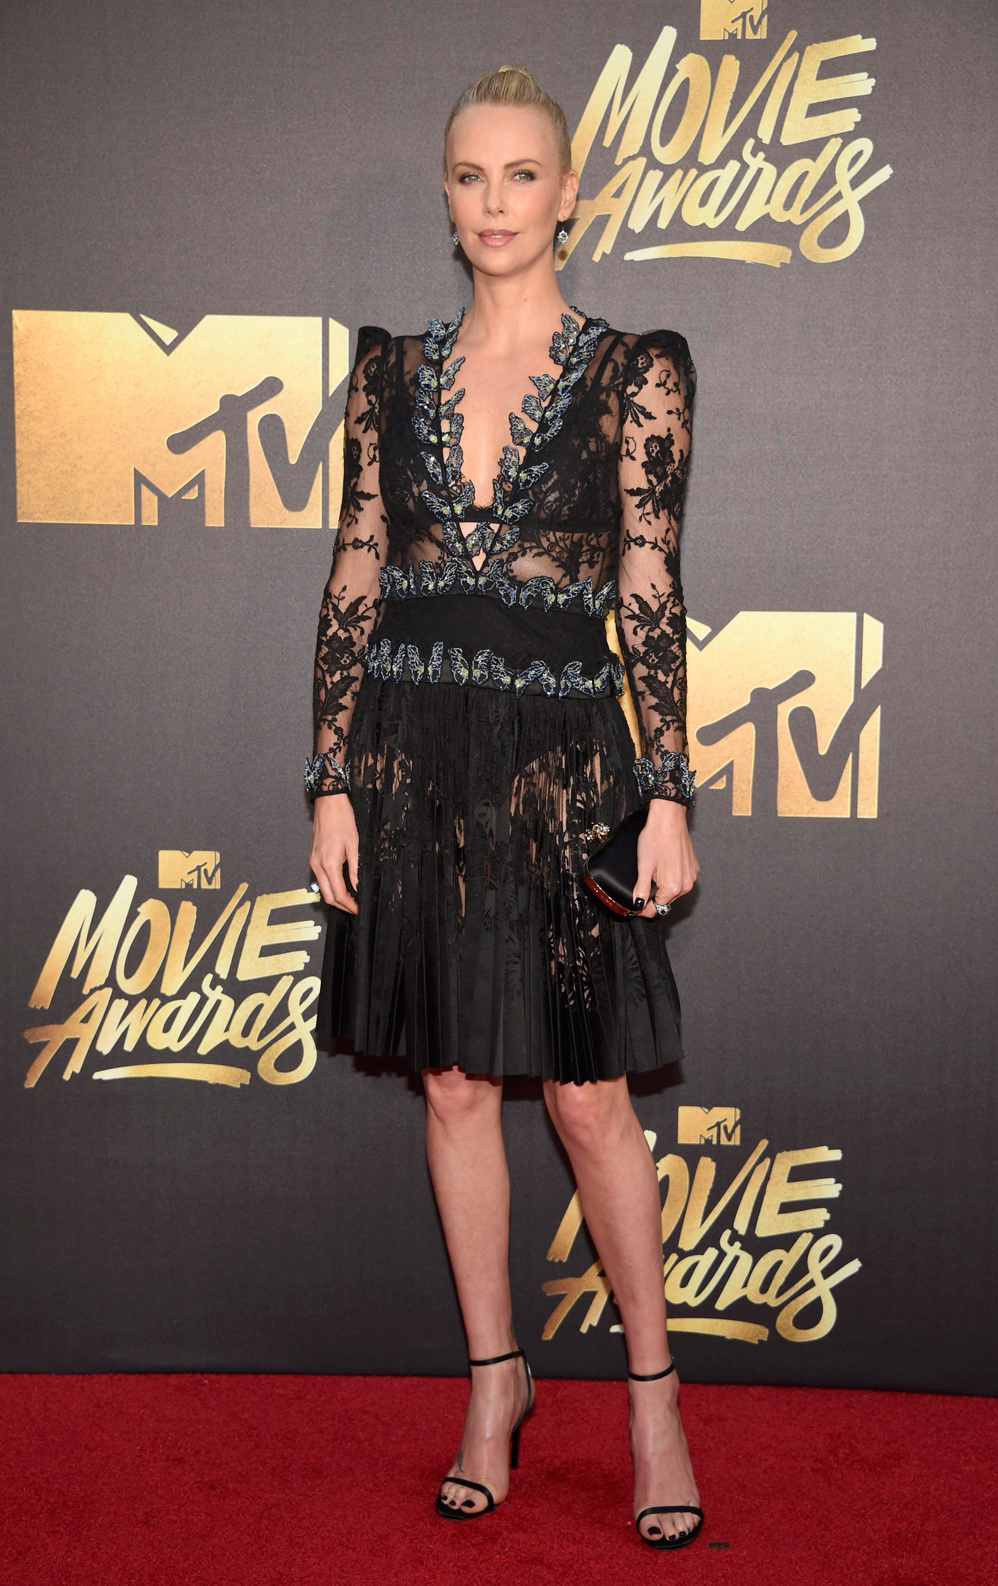 Actress Charlize Theron arrives at the 2016 MTV Movie Awards in Burbank, California April 9, 2016. REUTERS/Phil McCarten